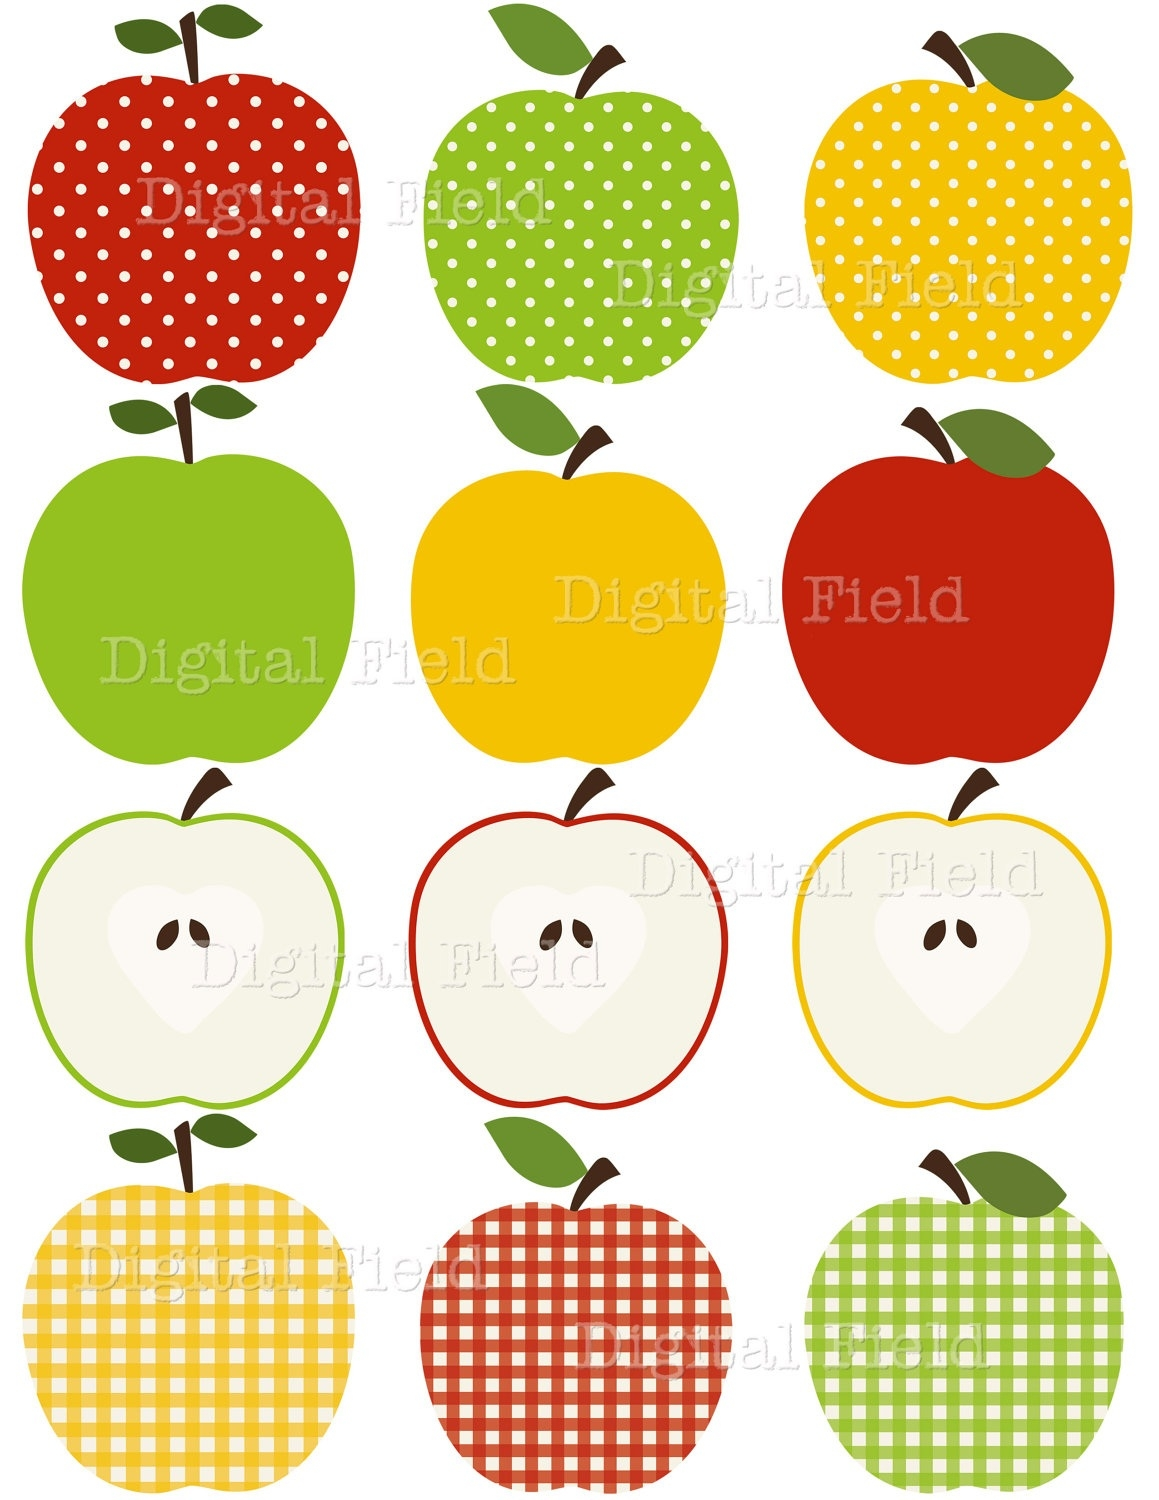 Wonderful of green and. Apples clipart borders